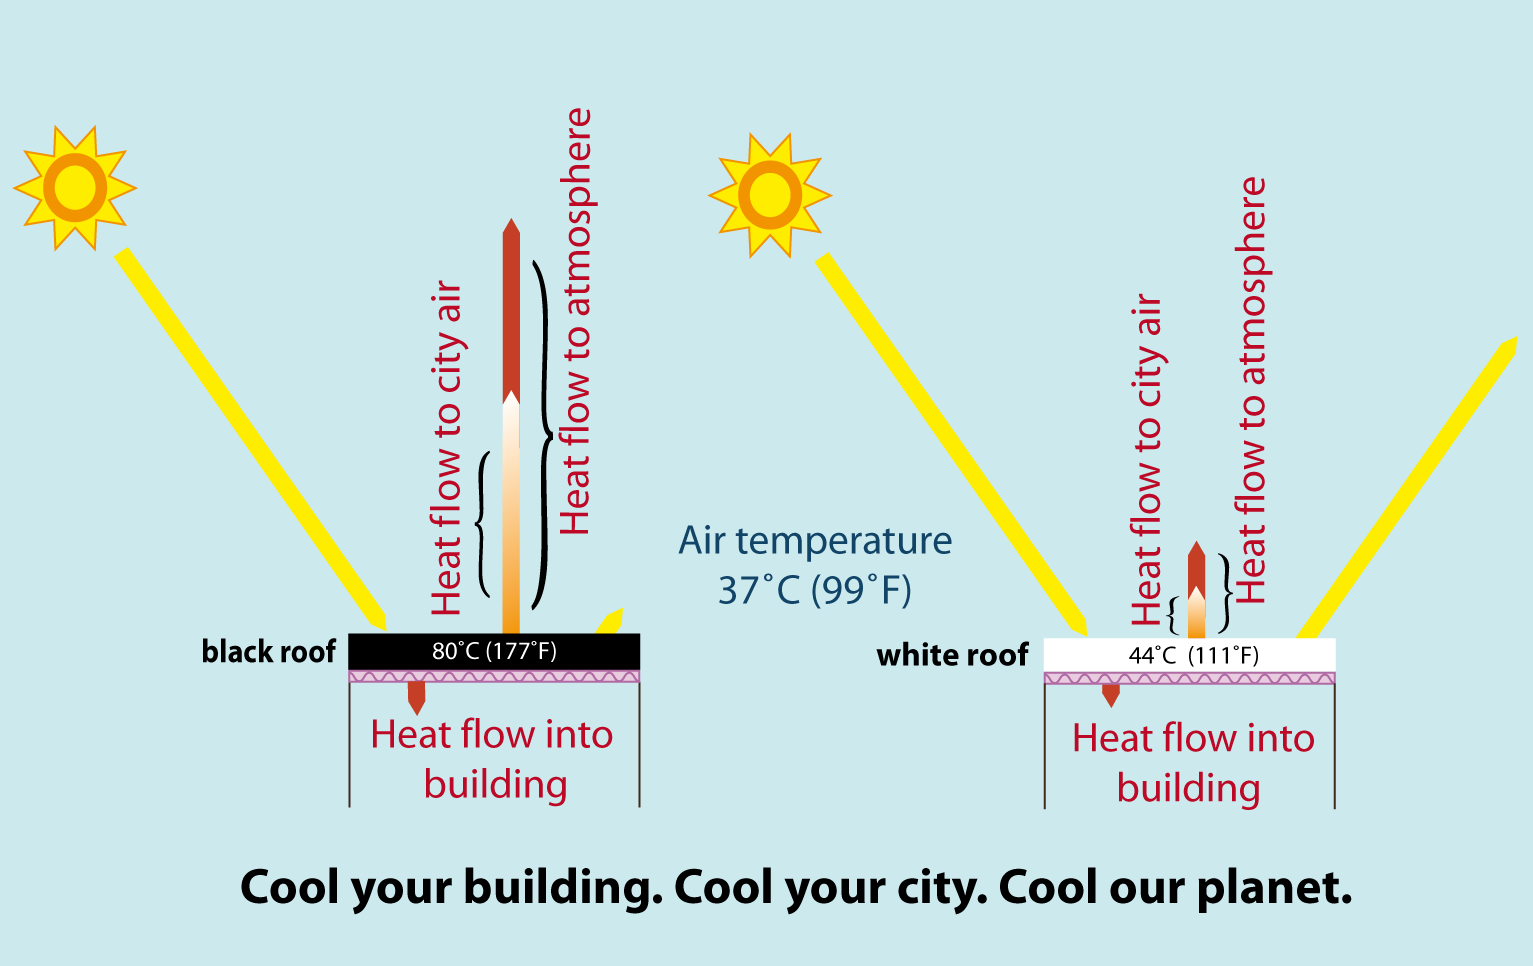 Global Model Confirms Cool Roofs Can Offset Carbon